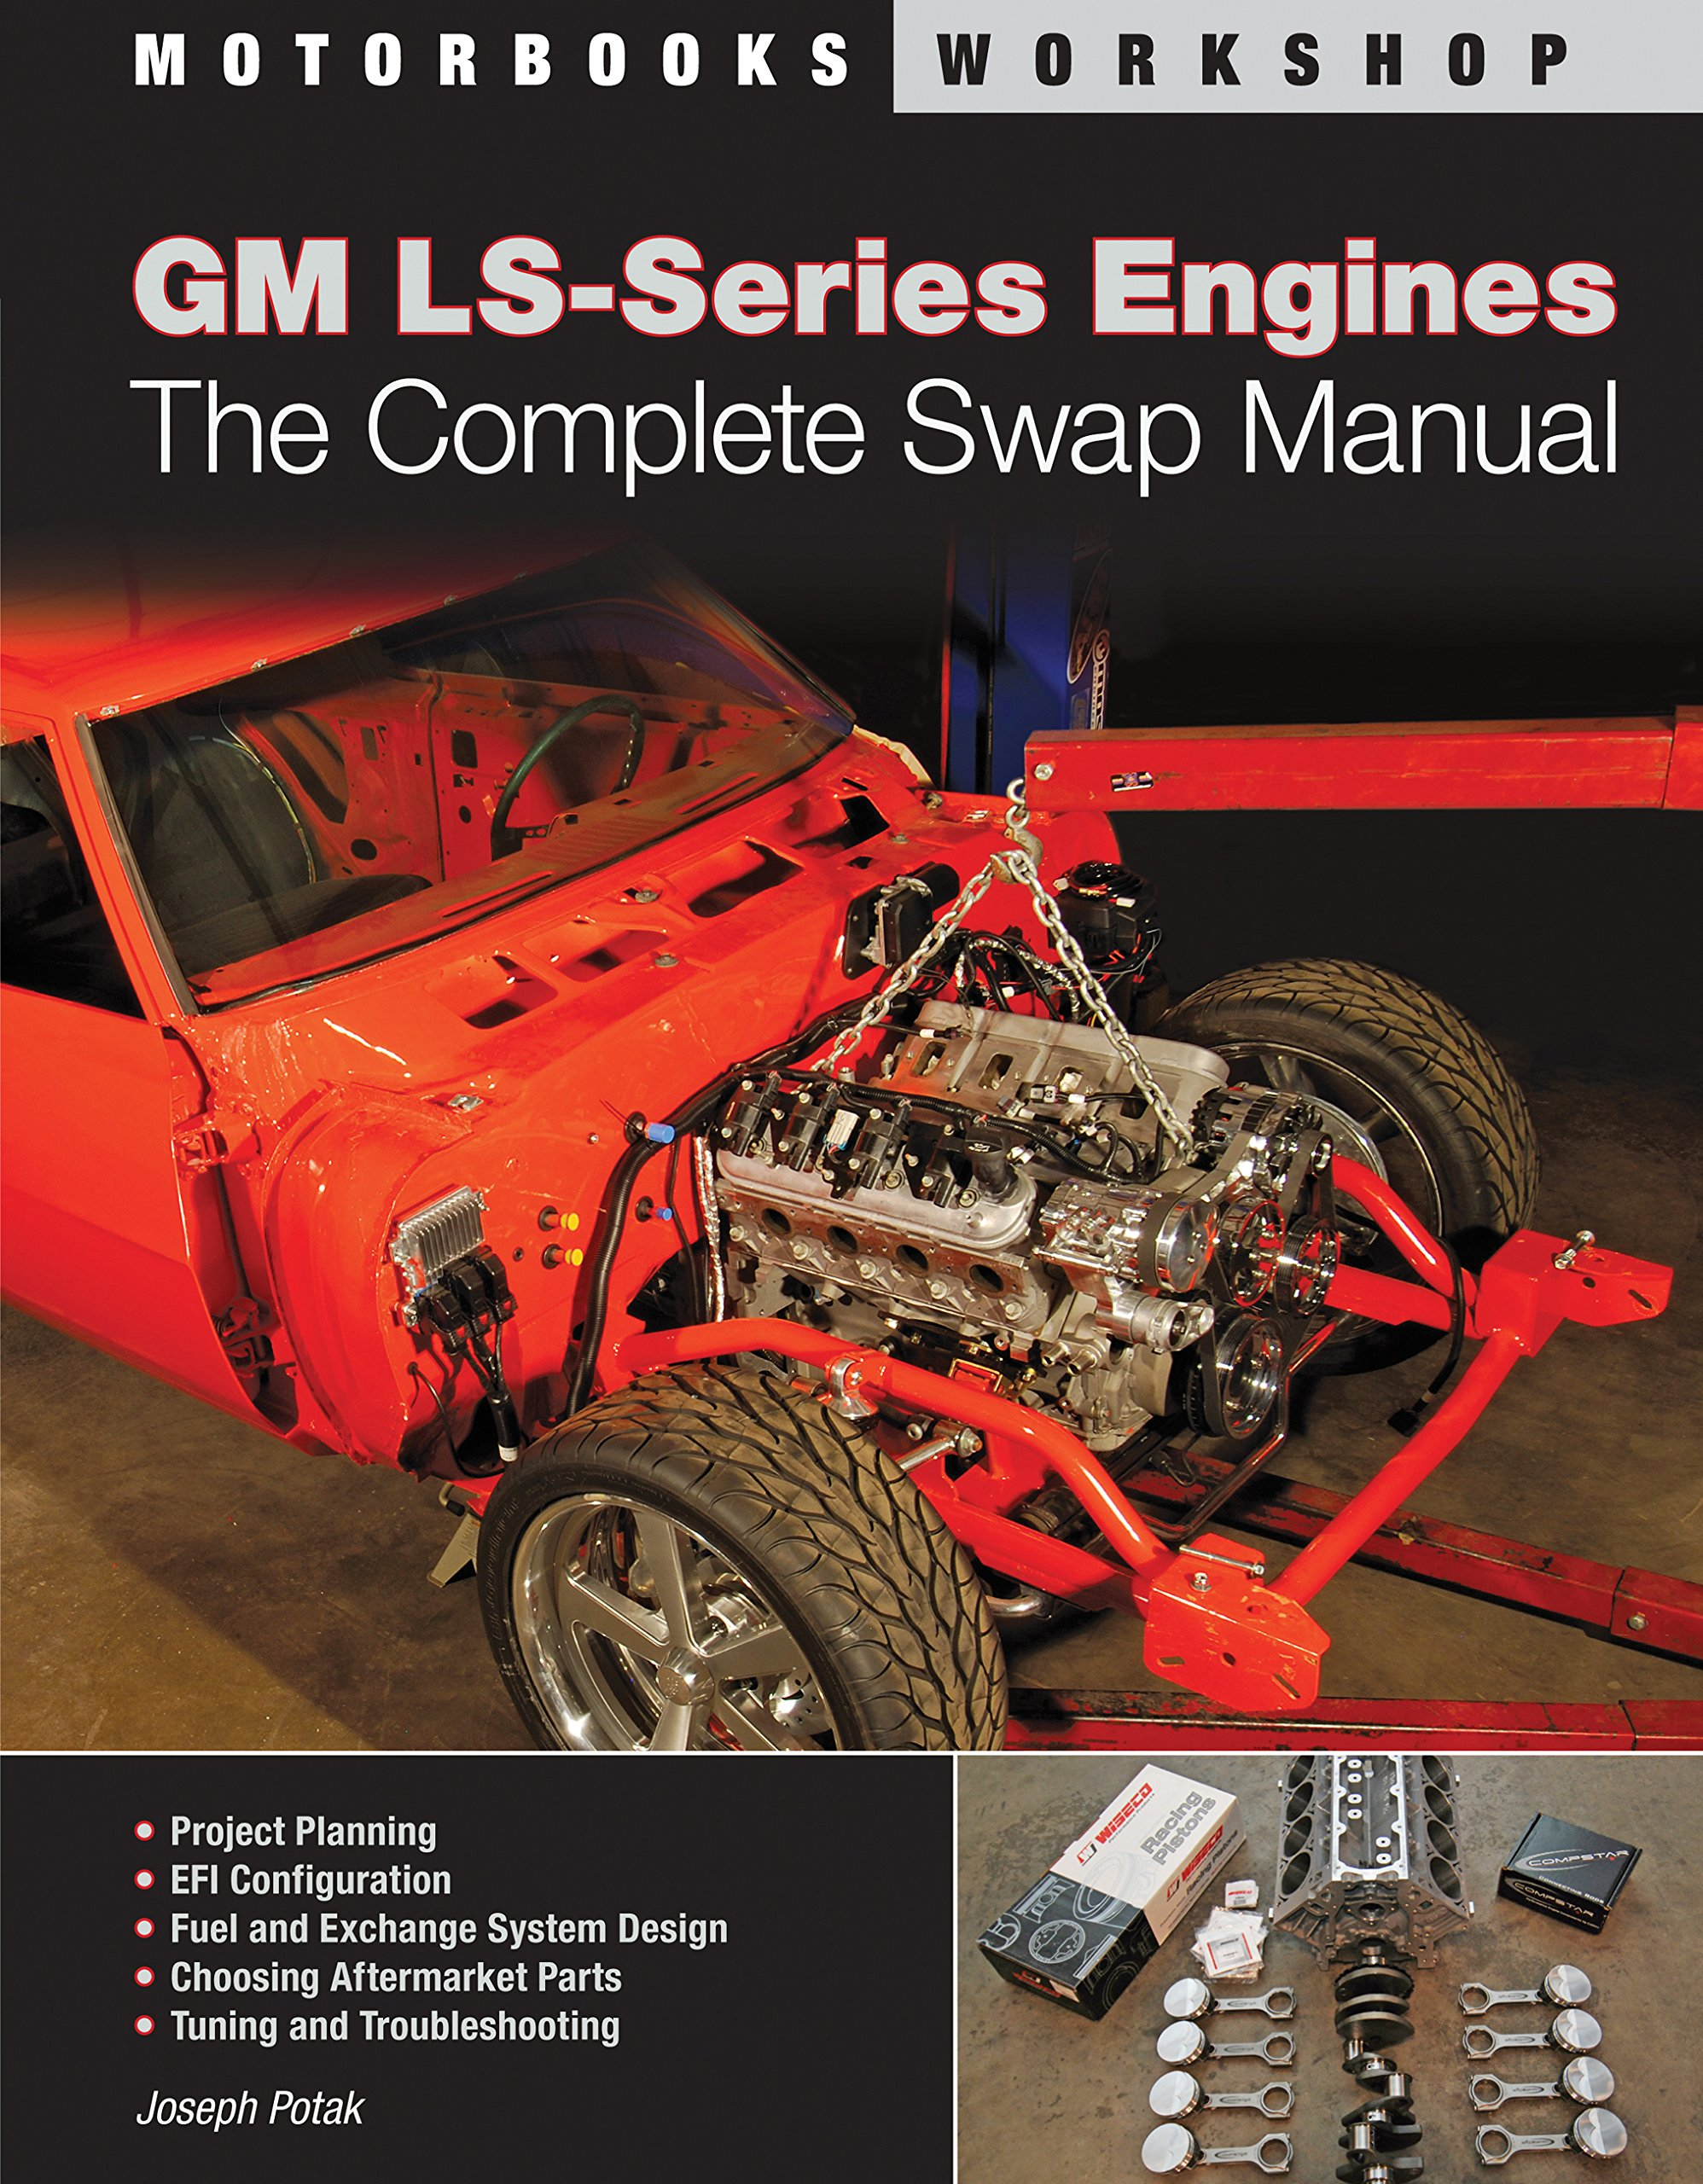 Gm ls series engines the complete swap manual motorbooks workshop gm ls series engines the complete swap manual motorbooks workshop joseph potak 9780760336090 amazon books fandeluxe Choice Image